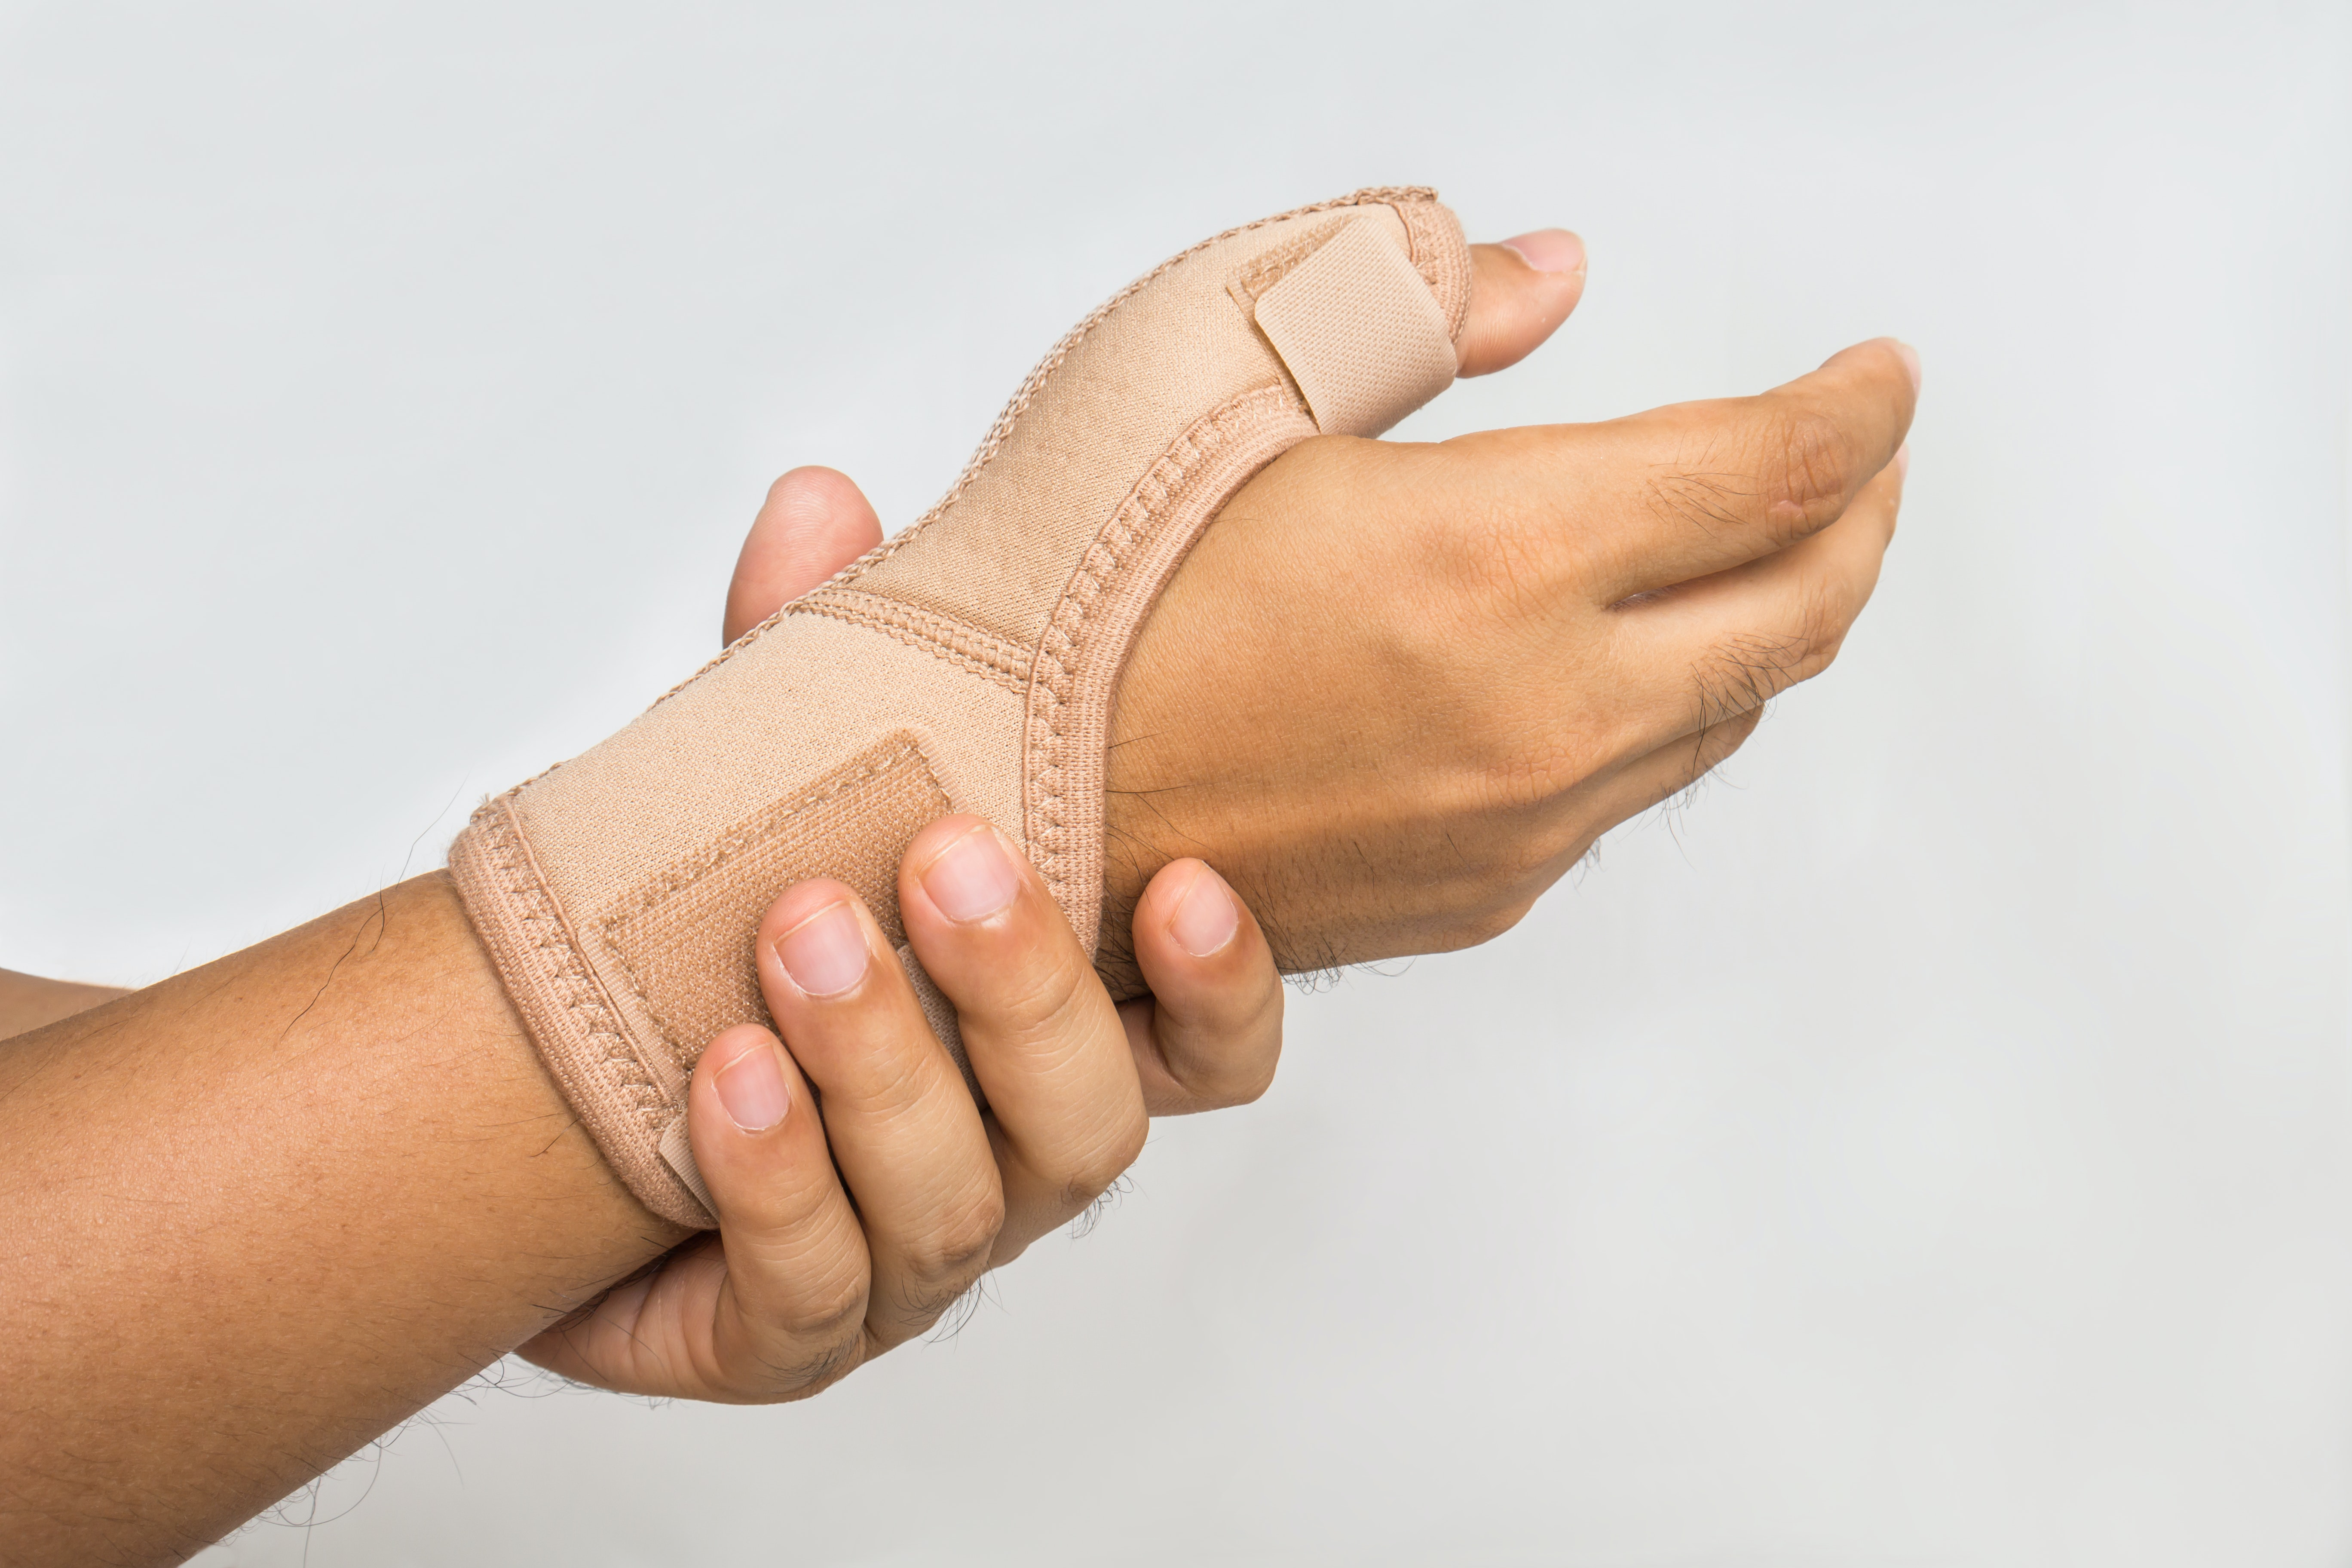 An image depicting a person suffering from Sprained Thumb symptoms